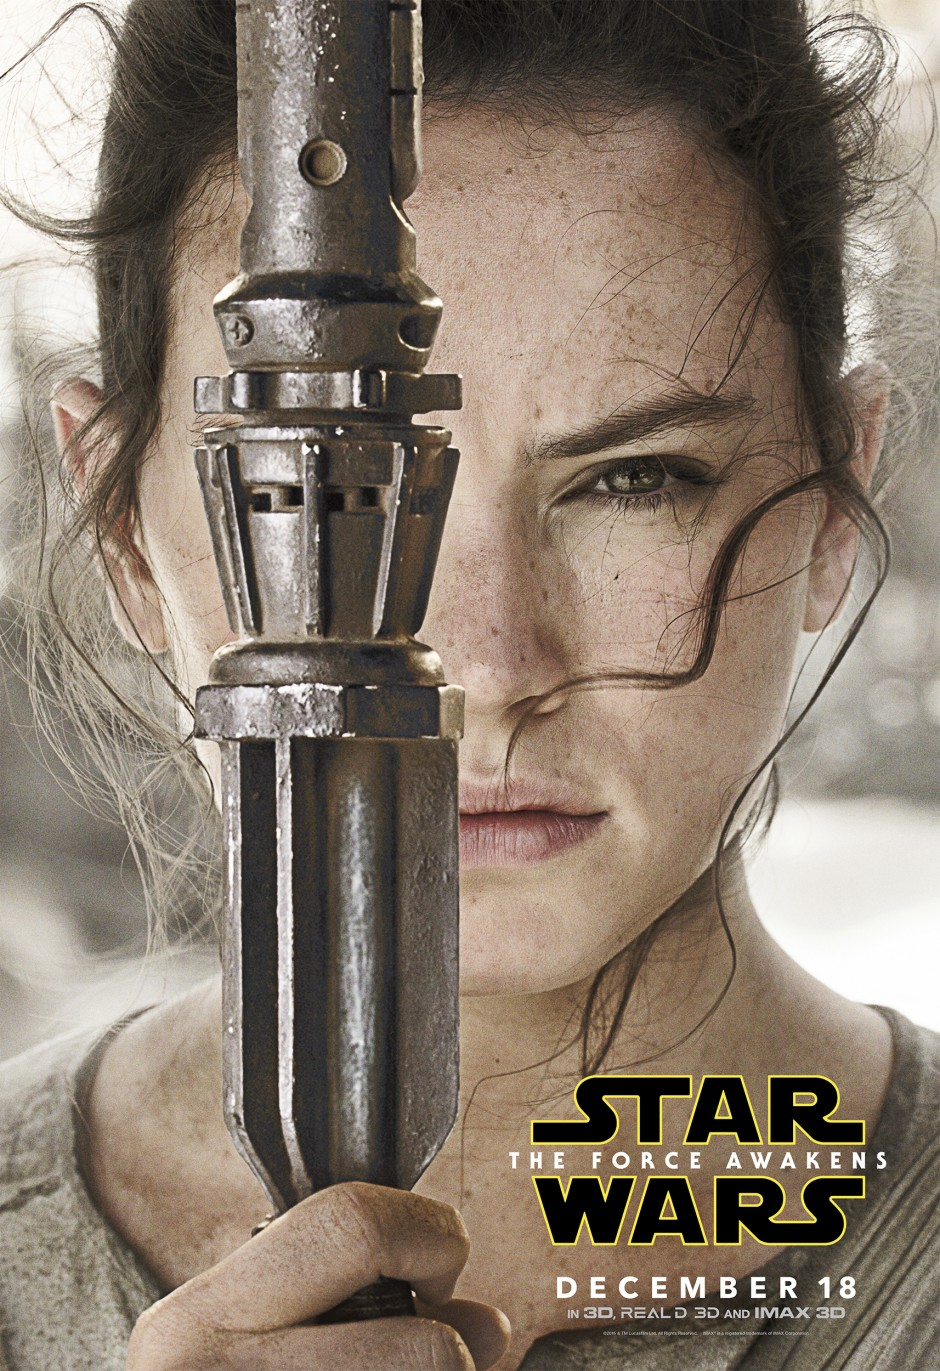 Star Wars: The Force Awakens Movie Poster - Rey